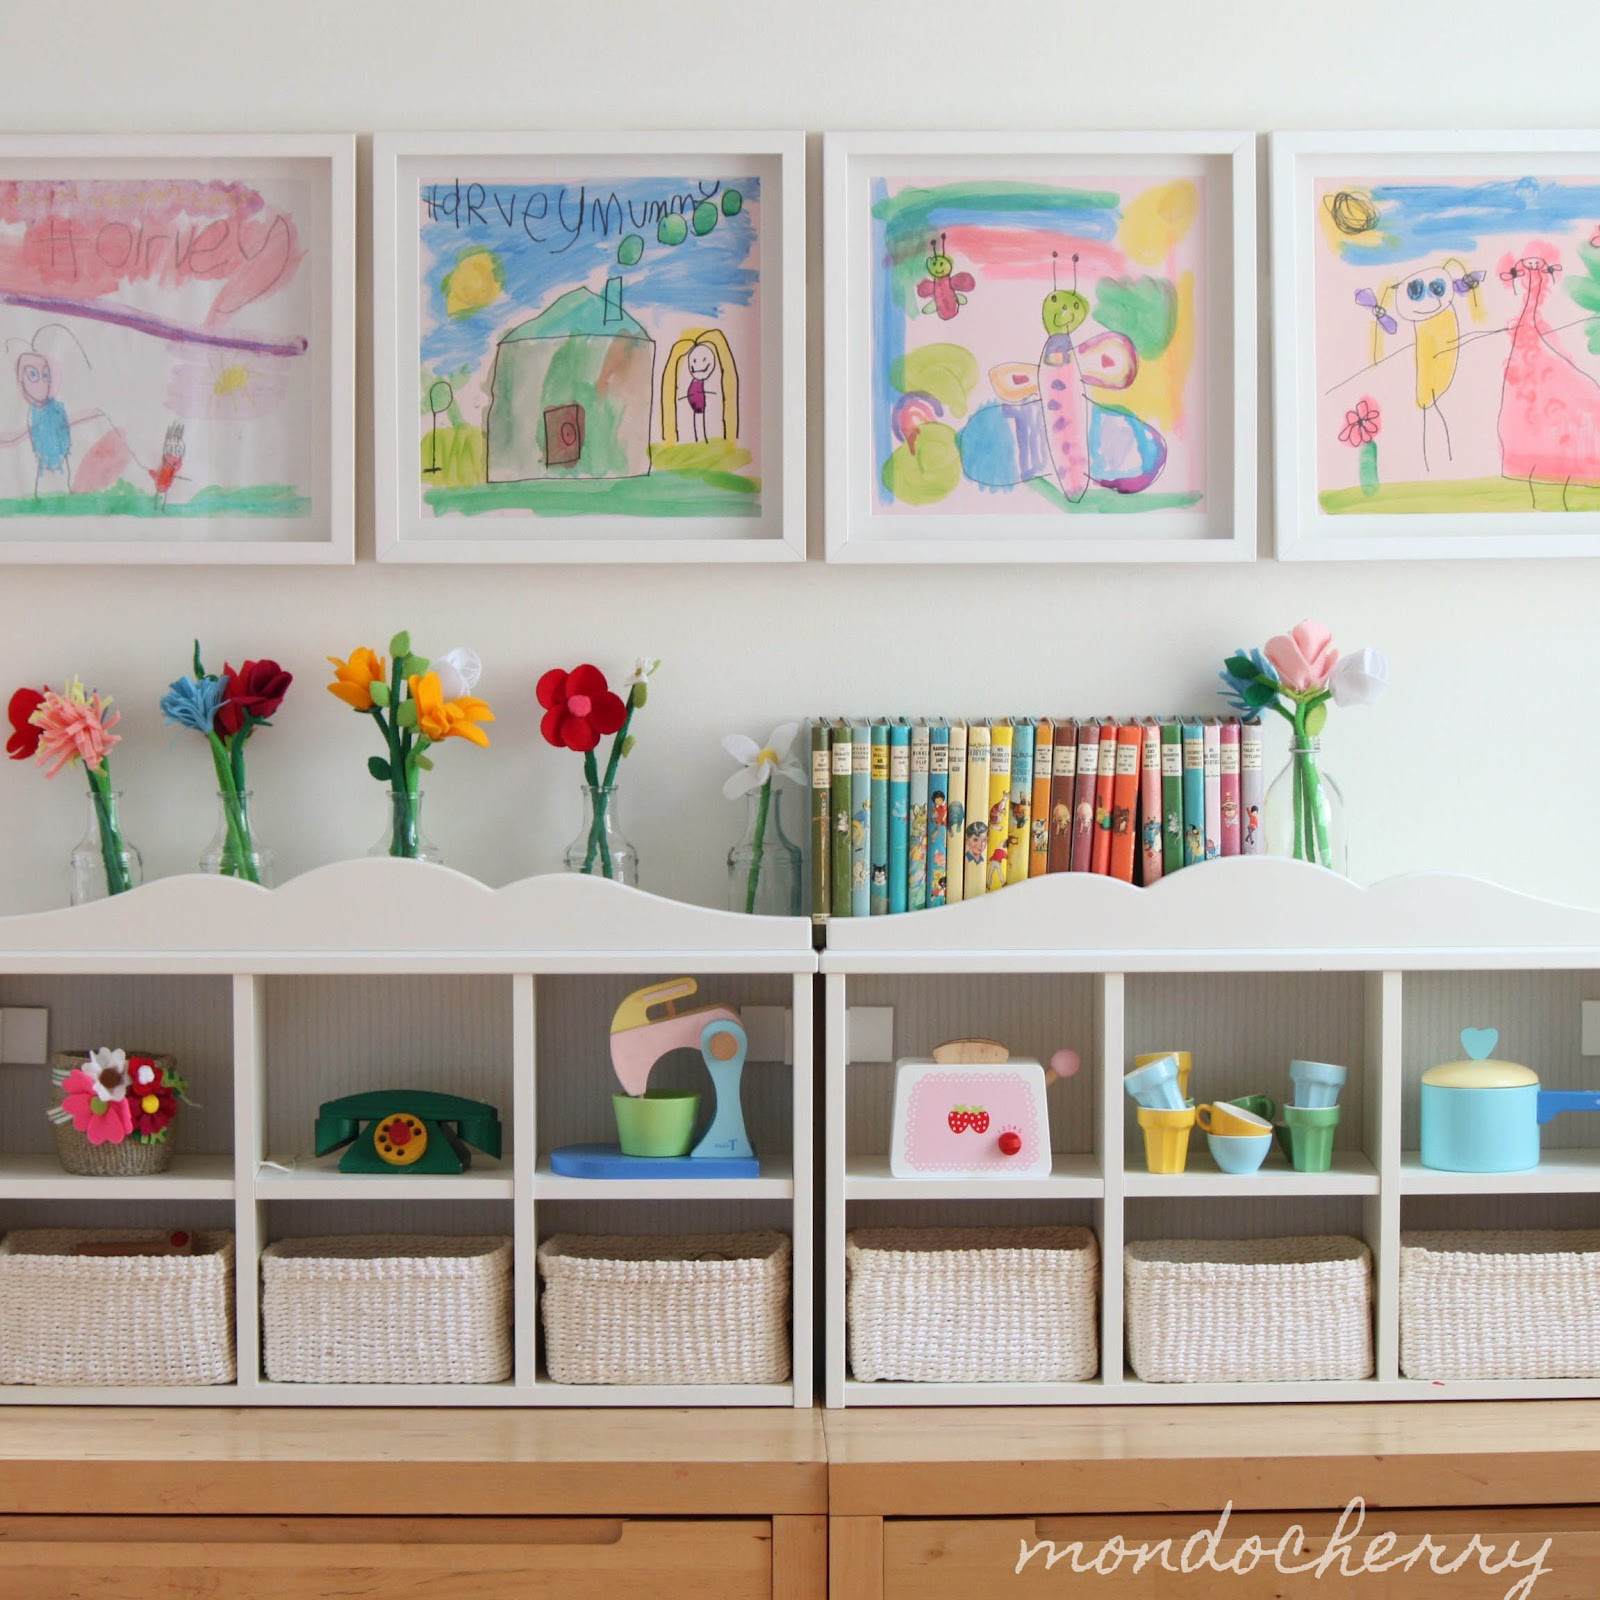 Best ideas about Kids Rooms Storage Ideas . Save or Pin Kids Playroom Designs & Ideas Now.